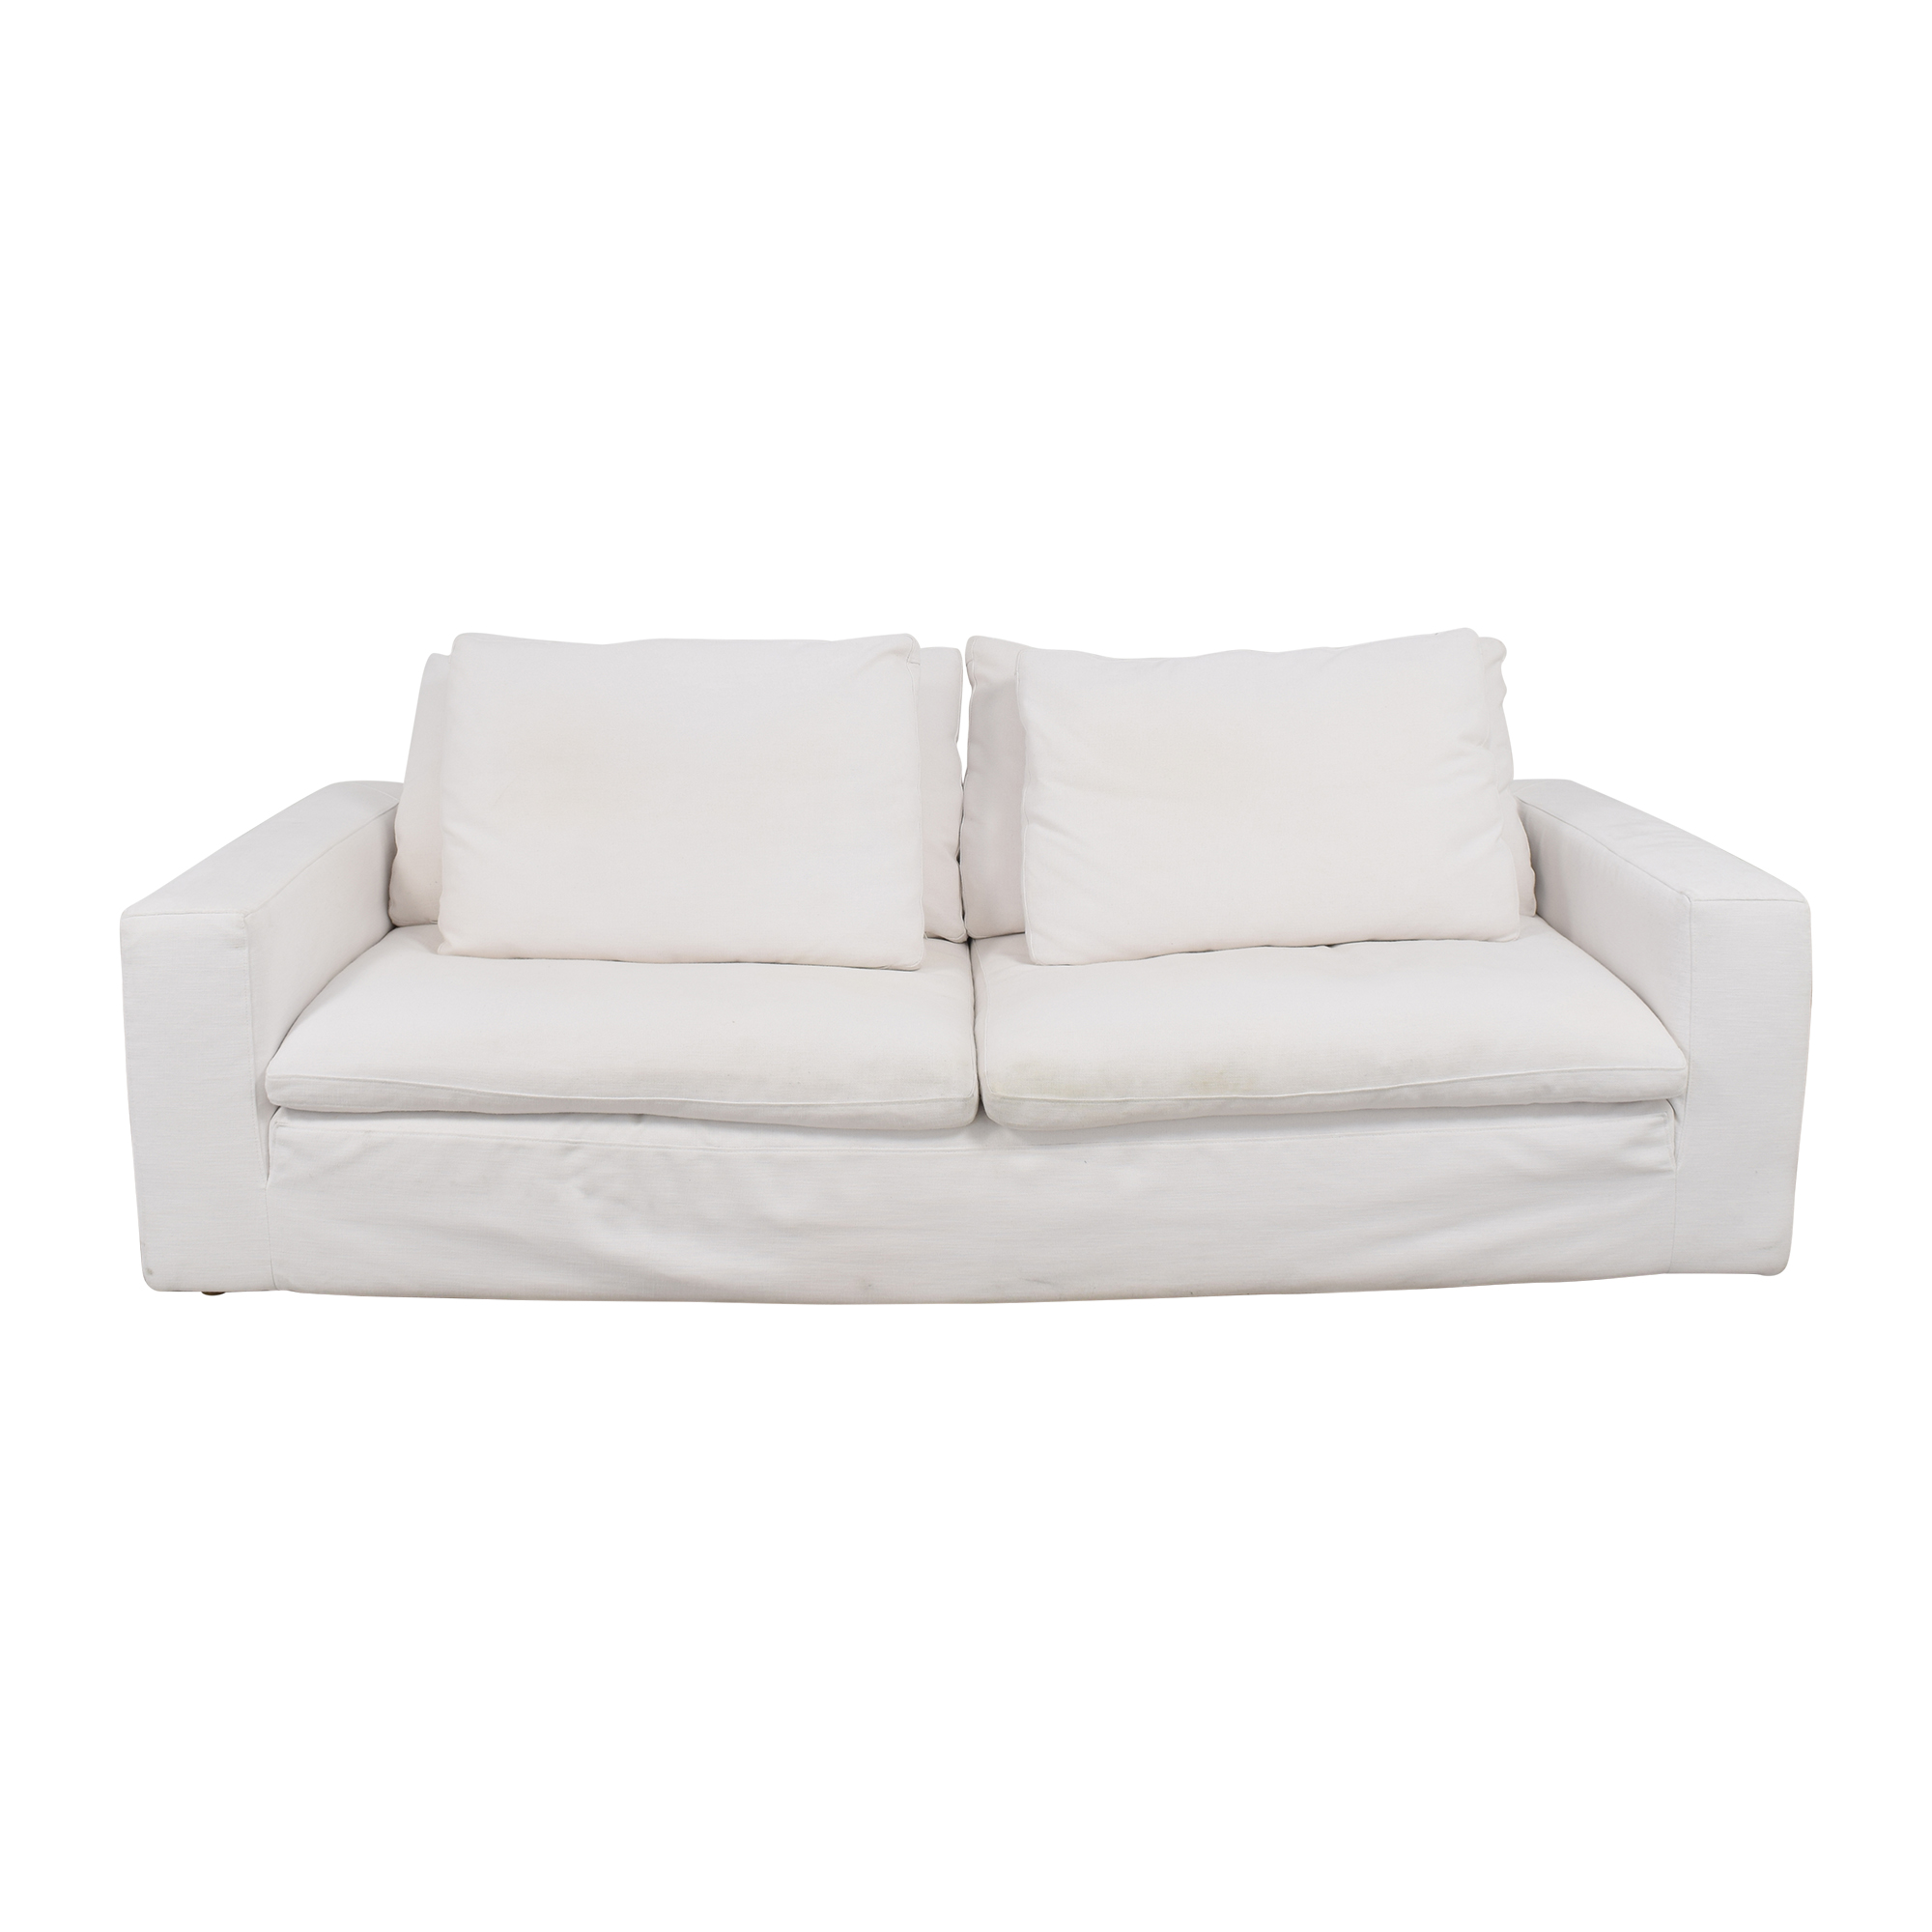 Restoration Hardware Cloud Two-Seat-Cushion Sofa / Classic Sofas